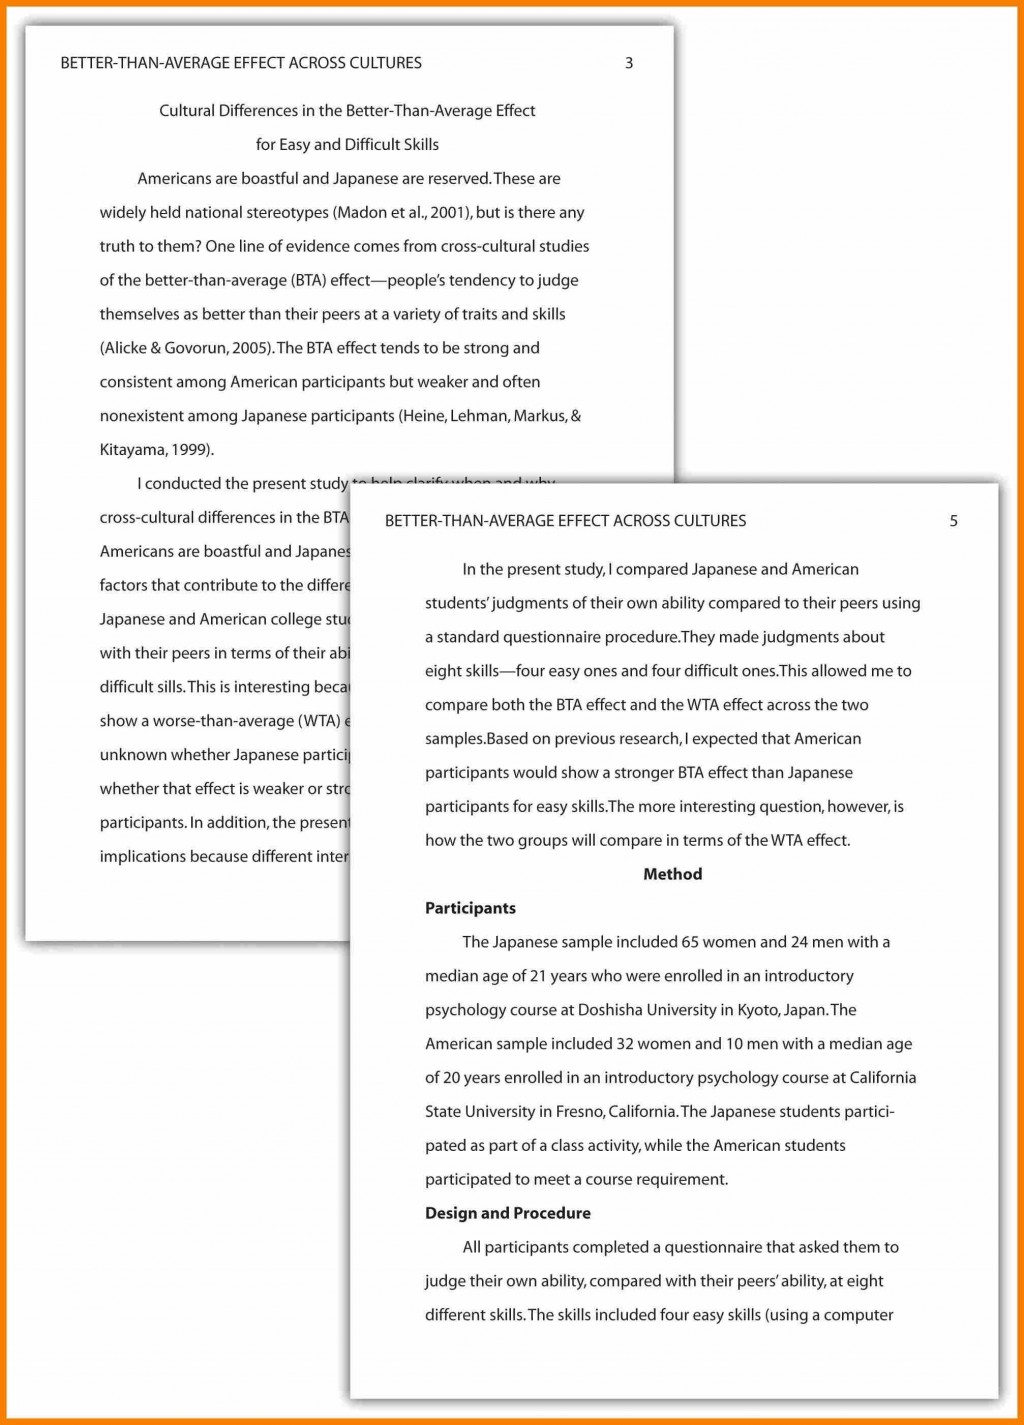 026 Essay Format Example Research Paper Apa Of Reflective In Style Ideas Collection Apamethods How To Write Unique Examples What Frightening For Middle School 2017 Writing College Large